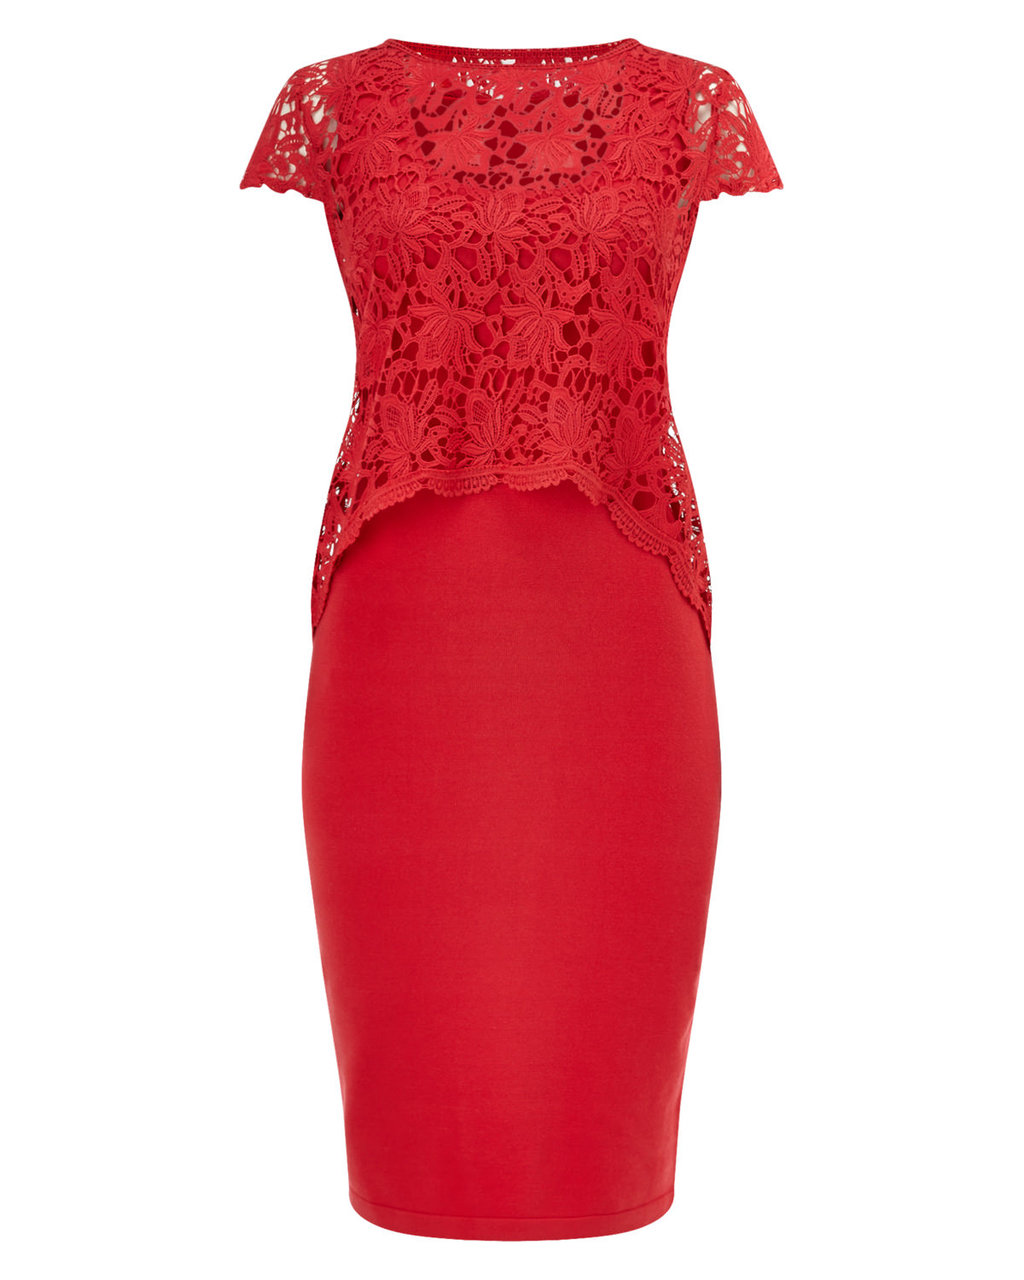 Lexus Lace Knit Dress - style: shift; fit: tailored/fitted; pattern: plain; hip detail: draws attention to hips; predominant colour: true red; occasions: evening; length: on the knee; neckline: crew; sleeve length: short sleeve; sleeve style: standard; pattern type: fabric; texture group: jersey - stretchy/drapey; fibres: viscose/rayon - mix; embellishment: lace; season: s/s 2016; wardrobe: event; embellishment location: bust